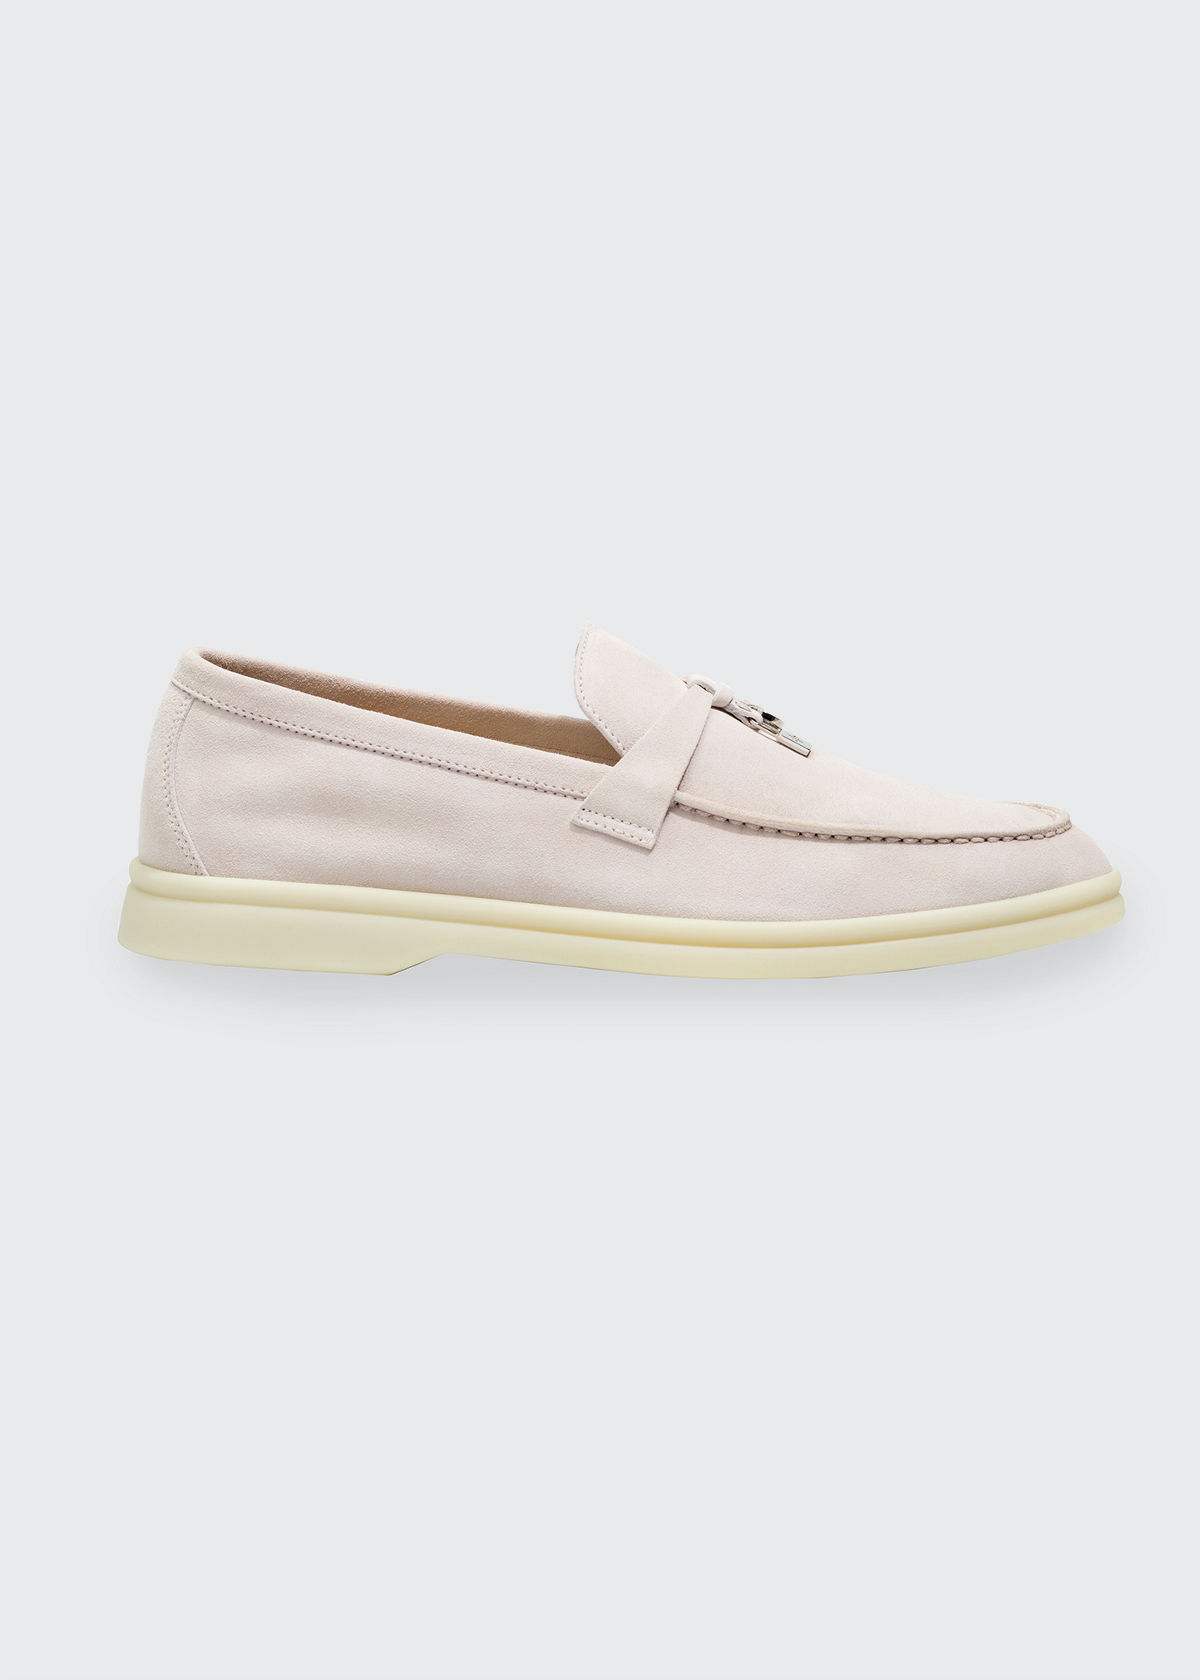 Loro Piana SUMMER CHARMS WALK SUEDE LOAFERS